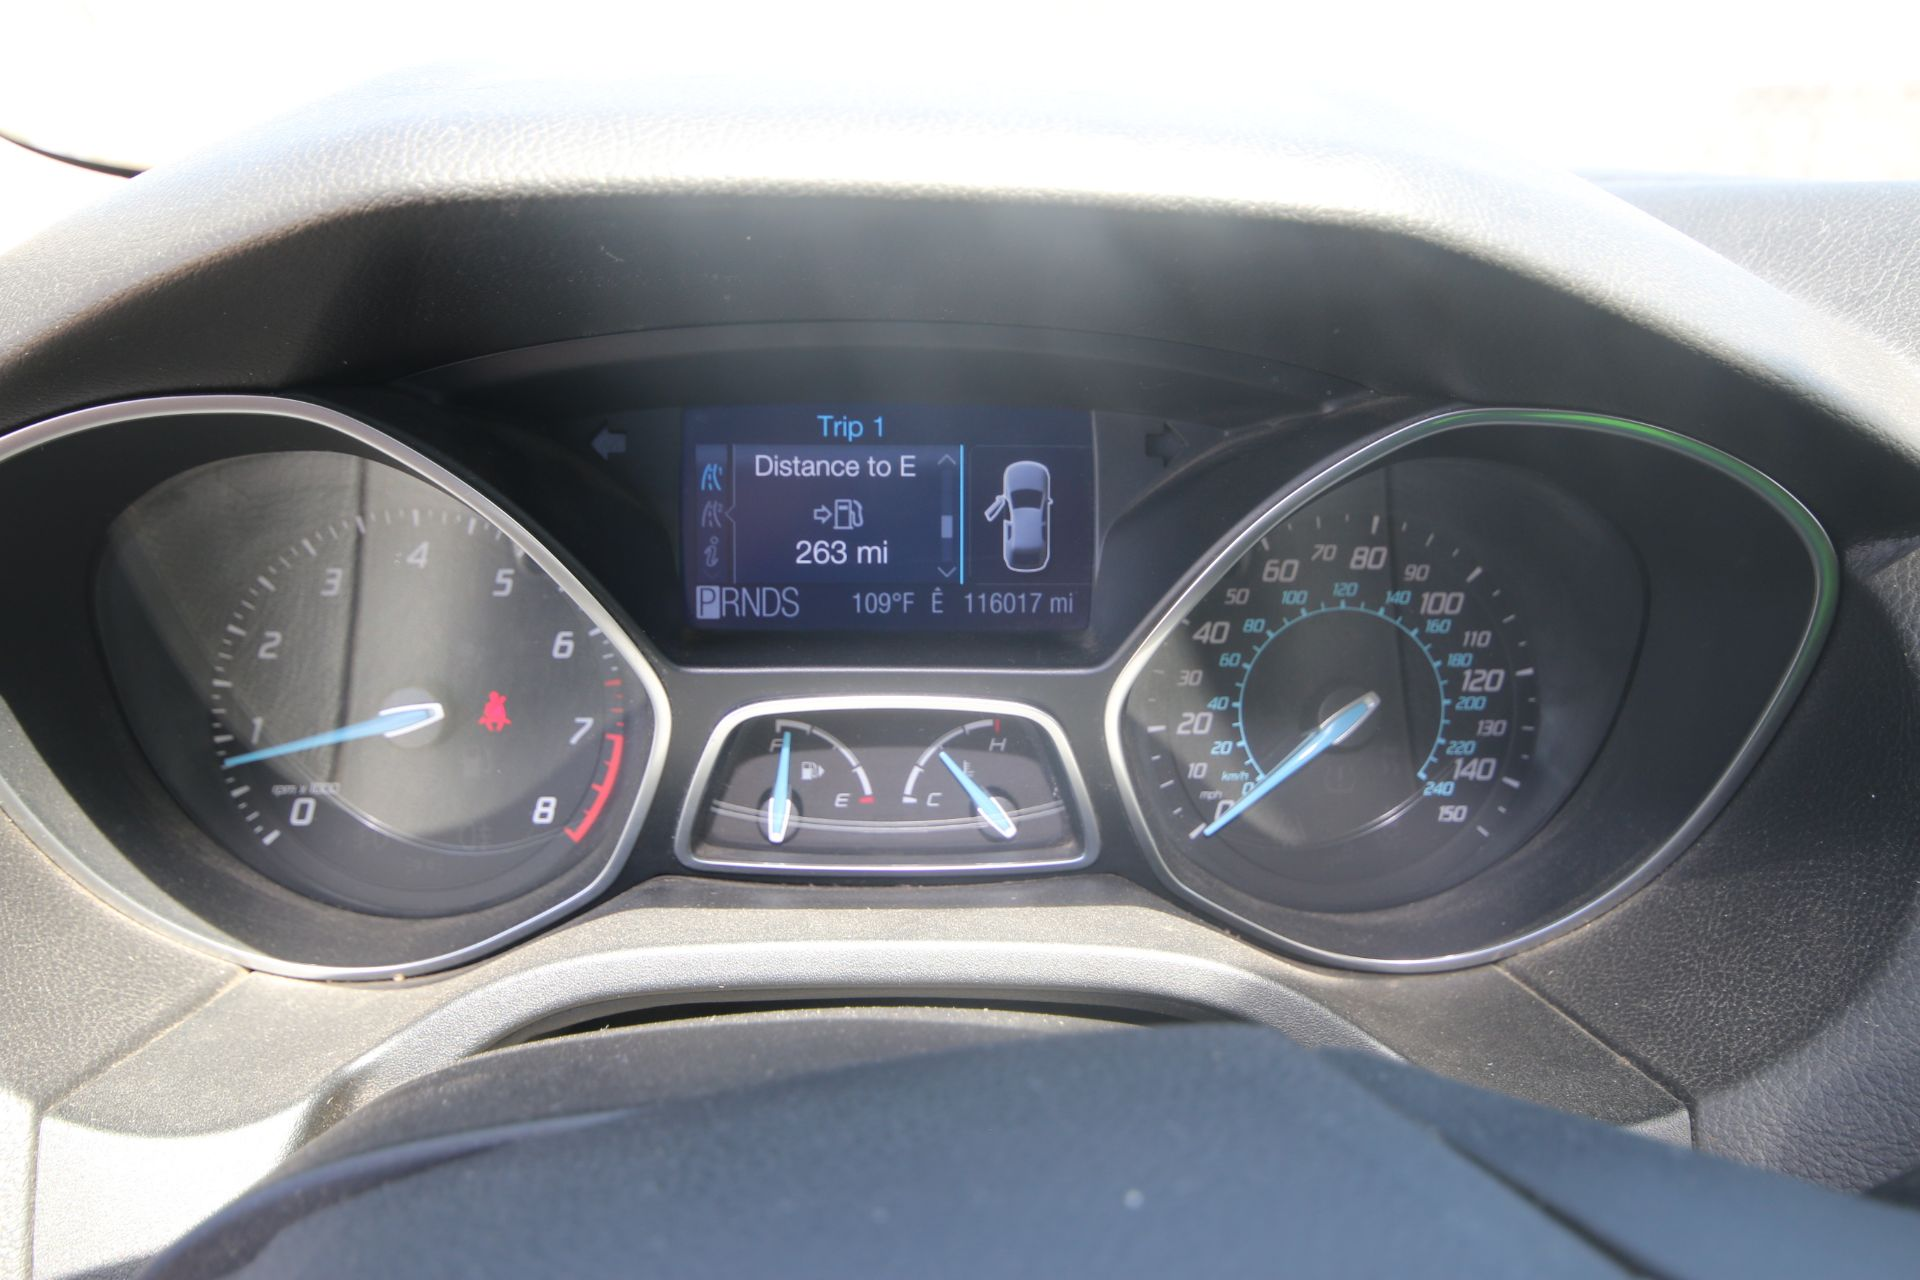 2012 White Ford Focus SE Hatchback 4D, VIN #: 1FAHP3K27CL423326, with 116,017 Miles, with 4-Doors, - Image 19 of 26